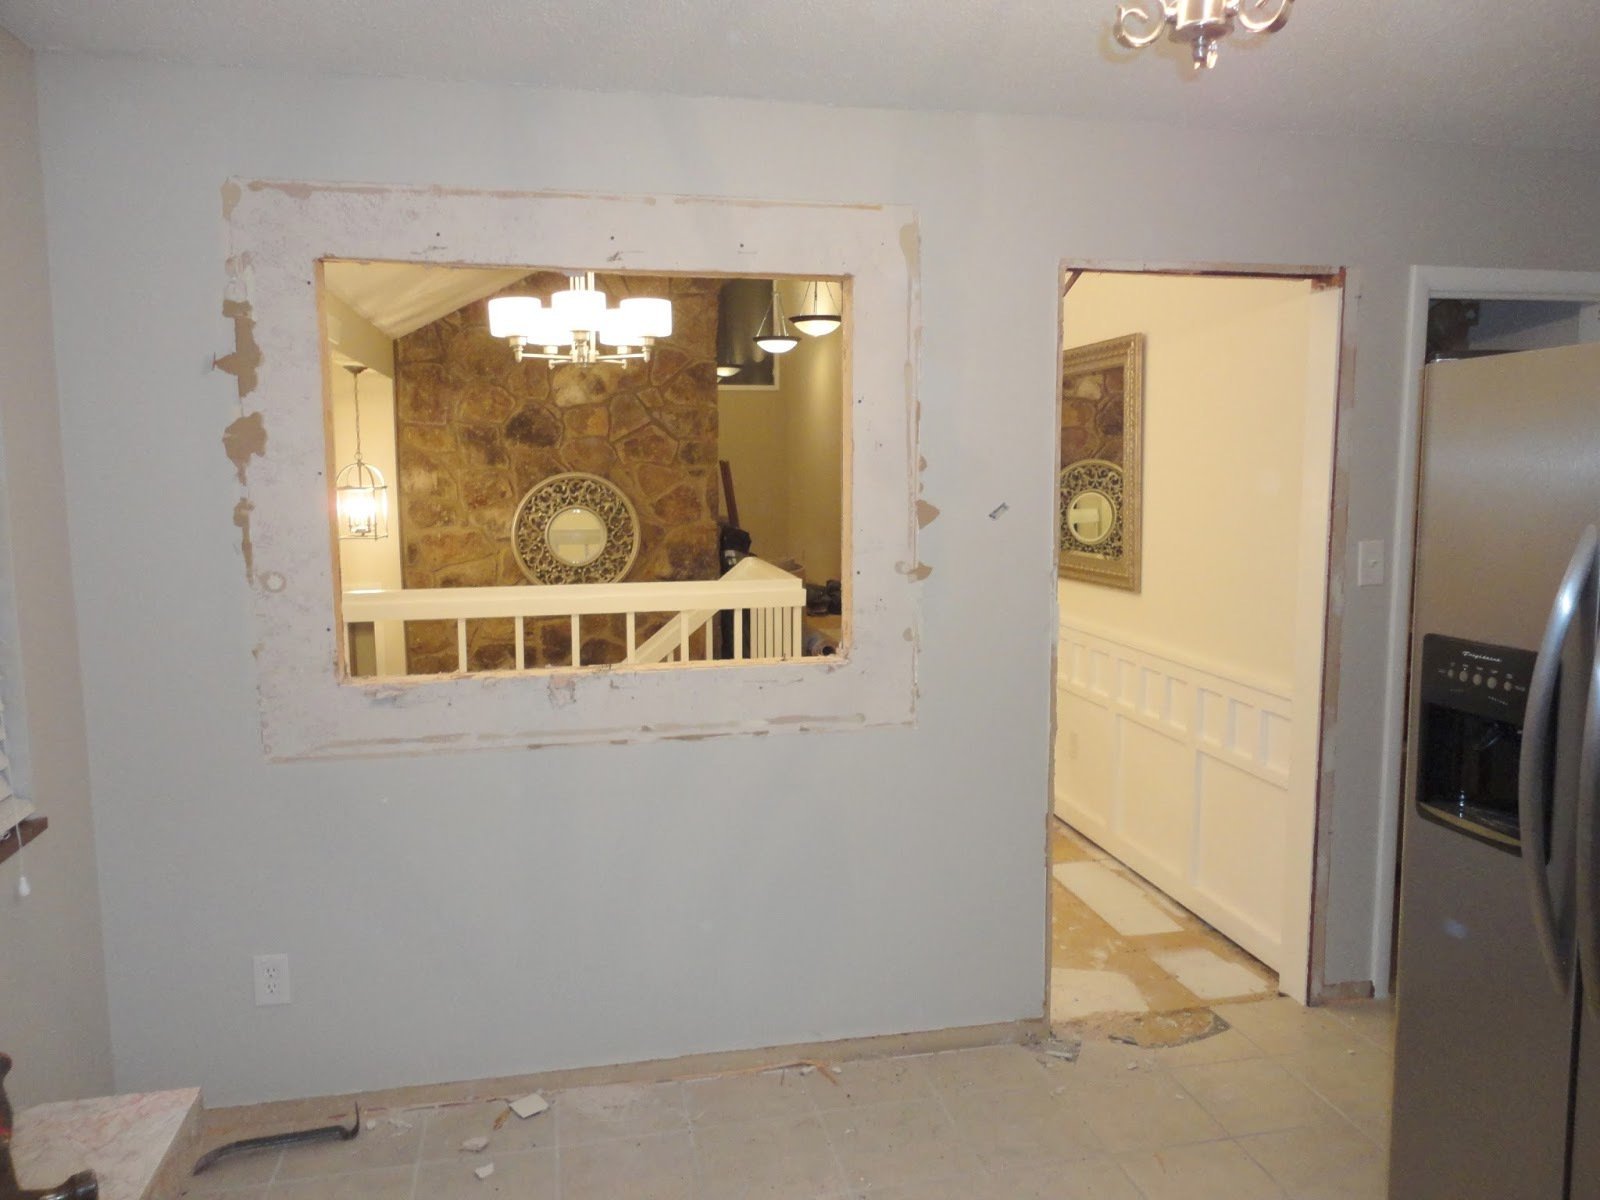 makeover part two knocking down walls livelovediy bloglovin